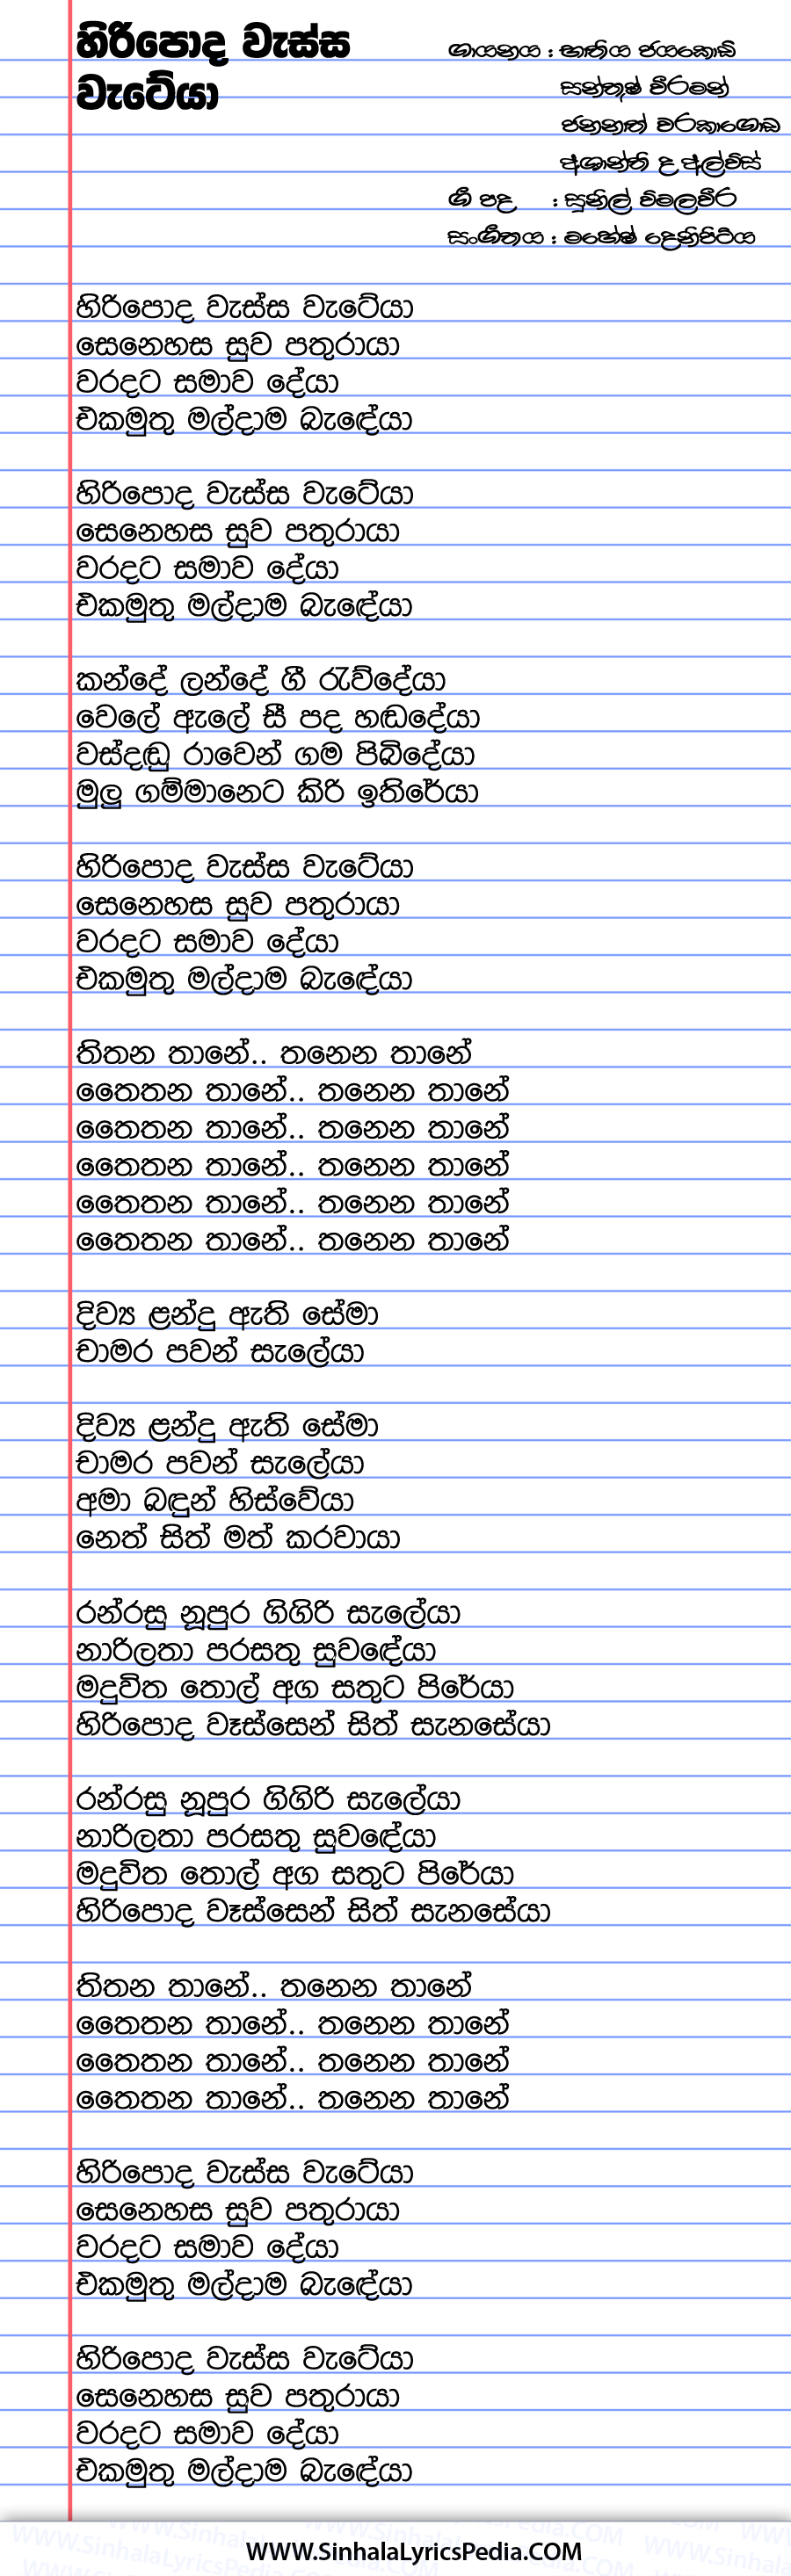 Hiri Poda Wessa Wateya Song Lyrics